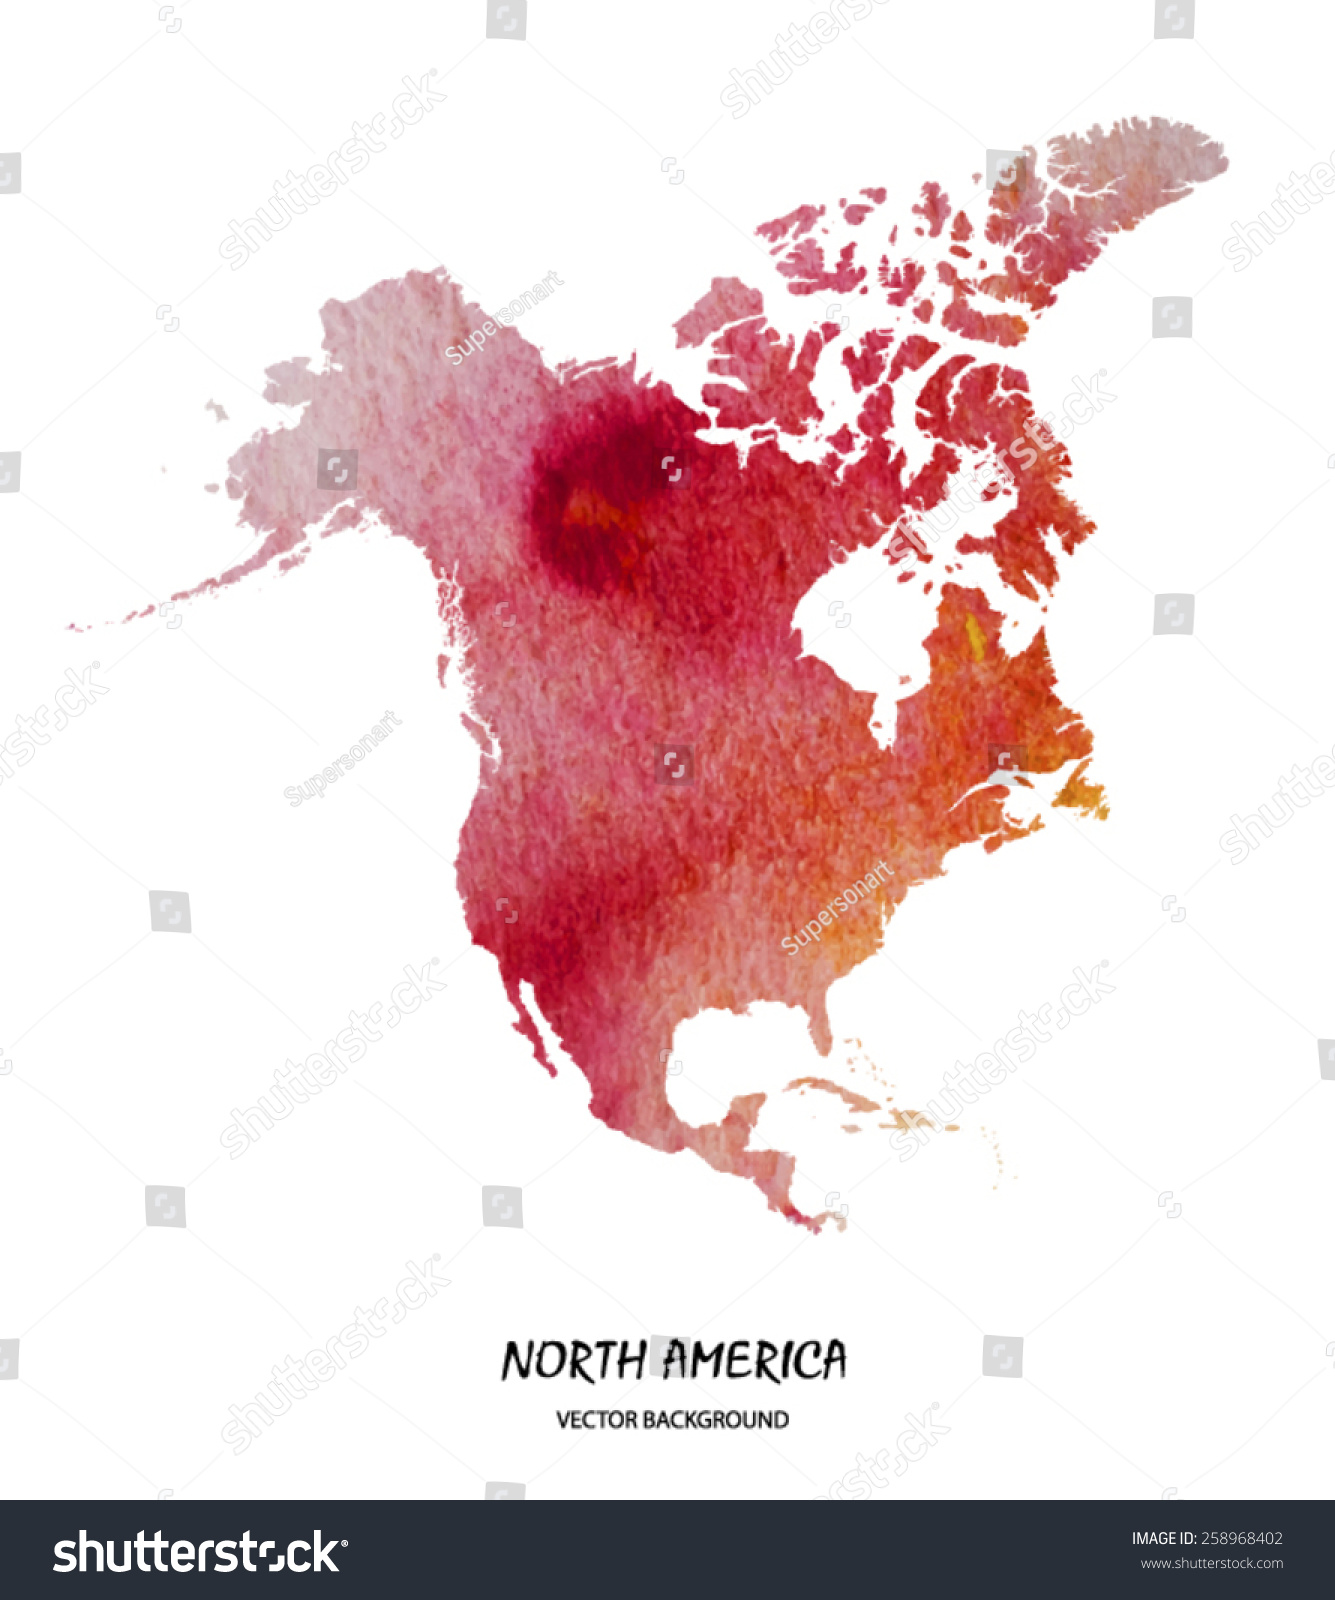 Hand Drawn Watercolor Map North America Stock Vector - United states watercolor map